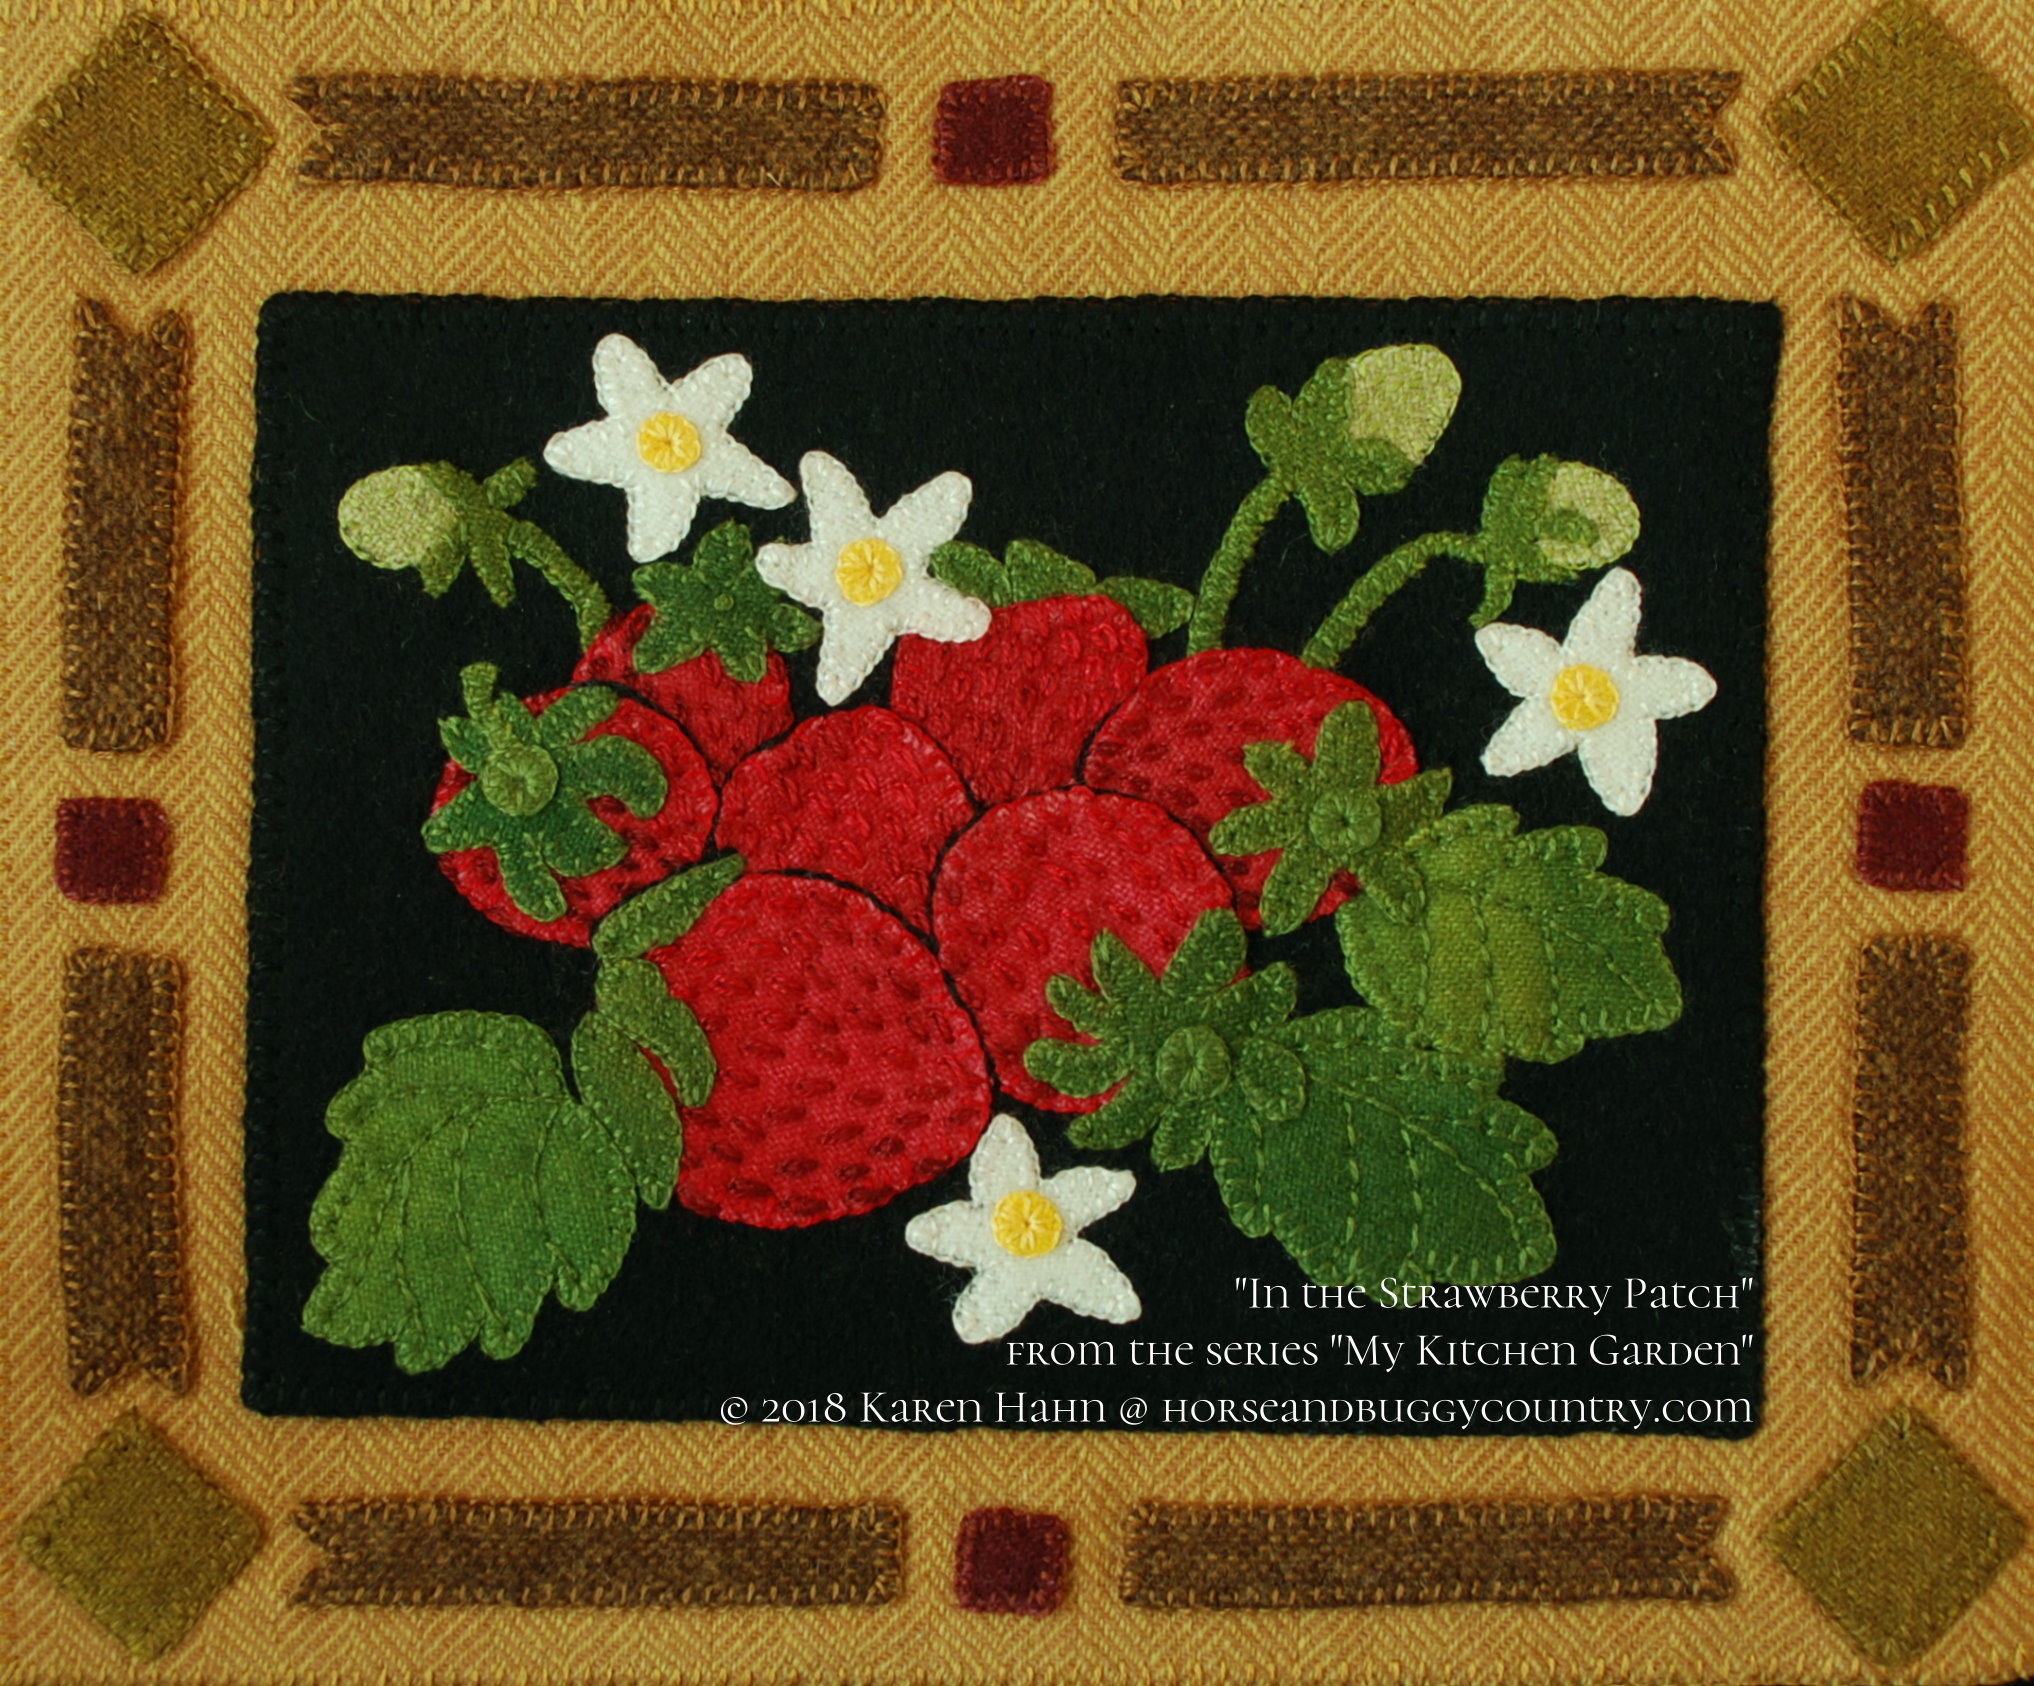 Wool applique pattern kit u201cin the strawberry patchu201d from the series